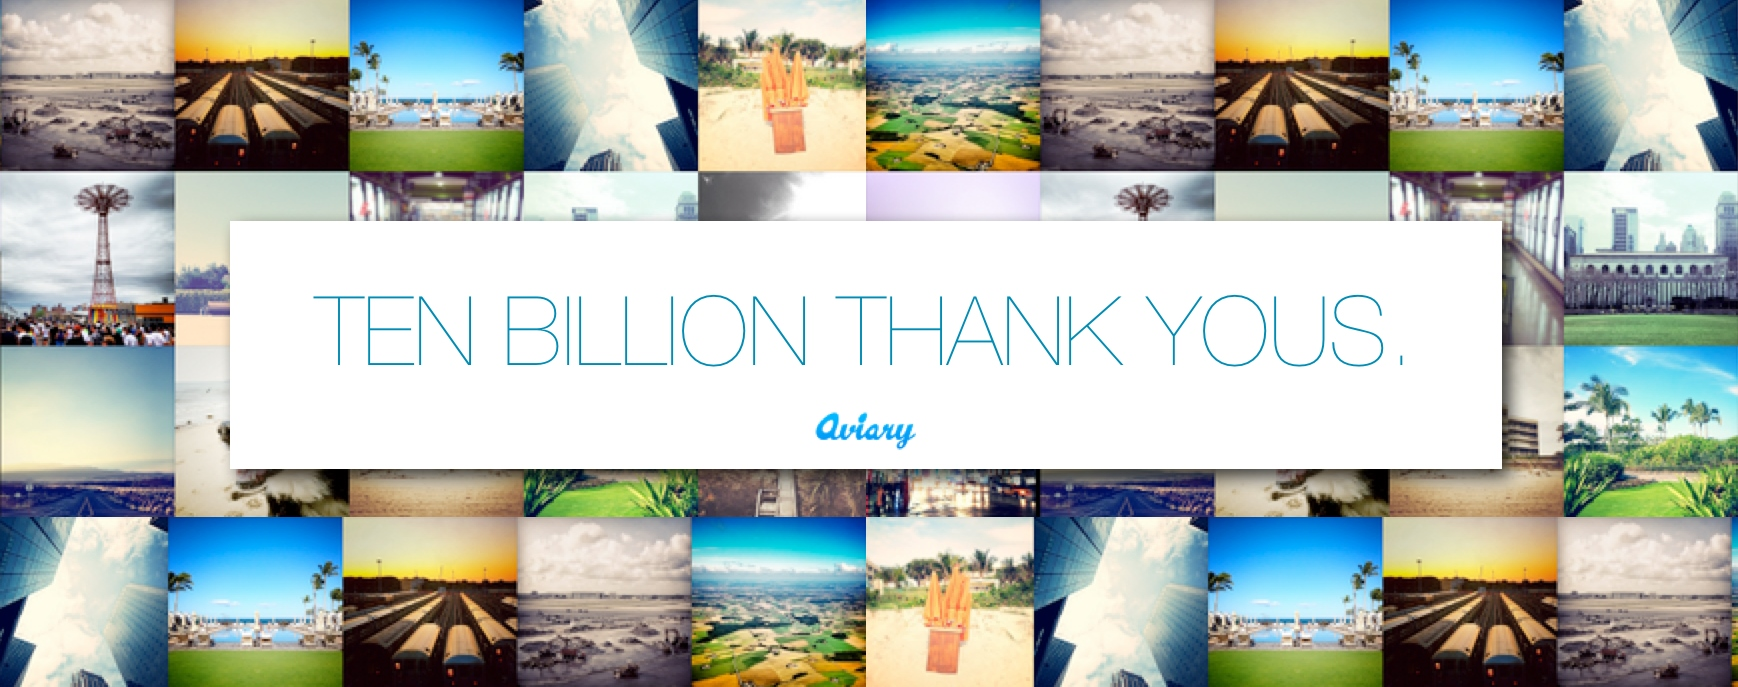 Aviary 10 billion.jpg